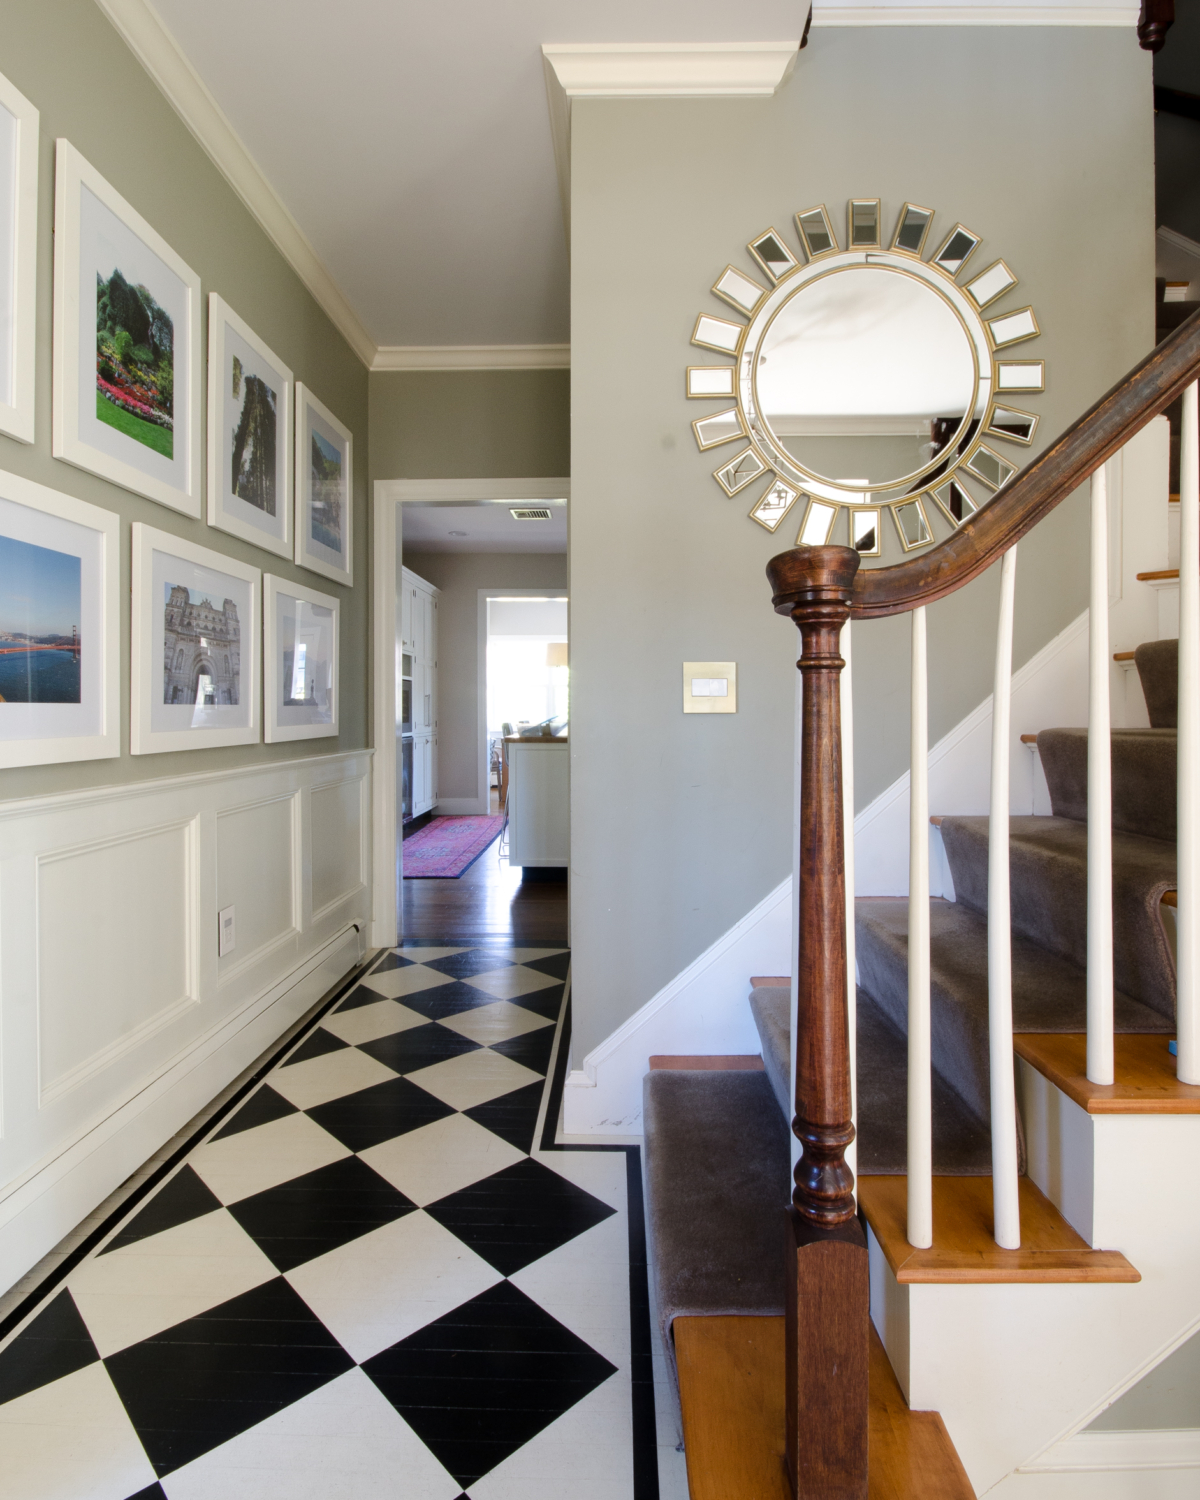 Foyer Light Switch: How To Update Light Switches And Outlets For A